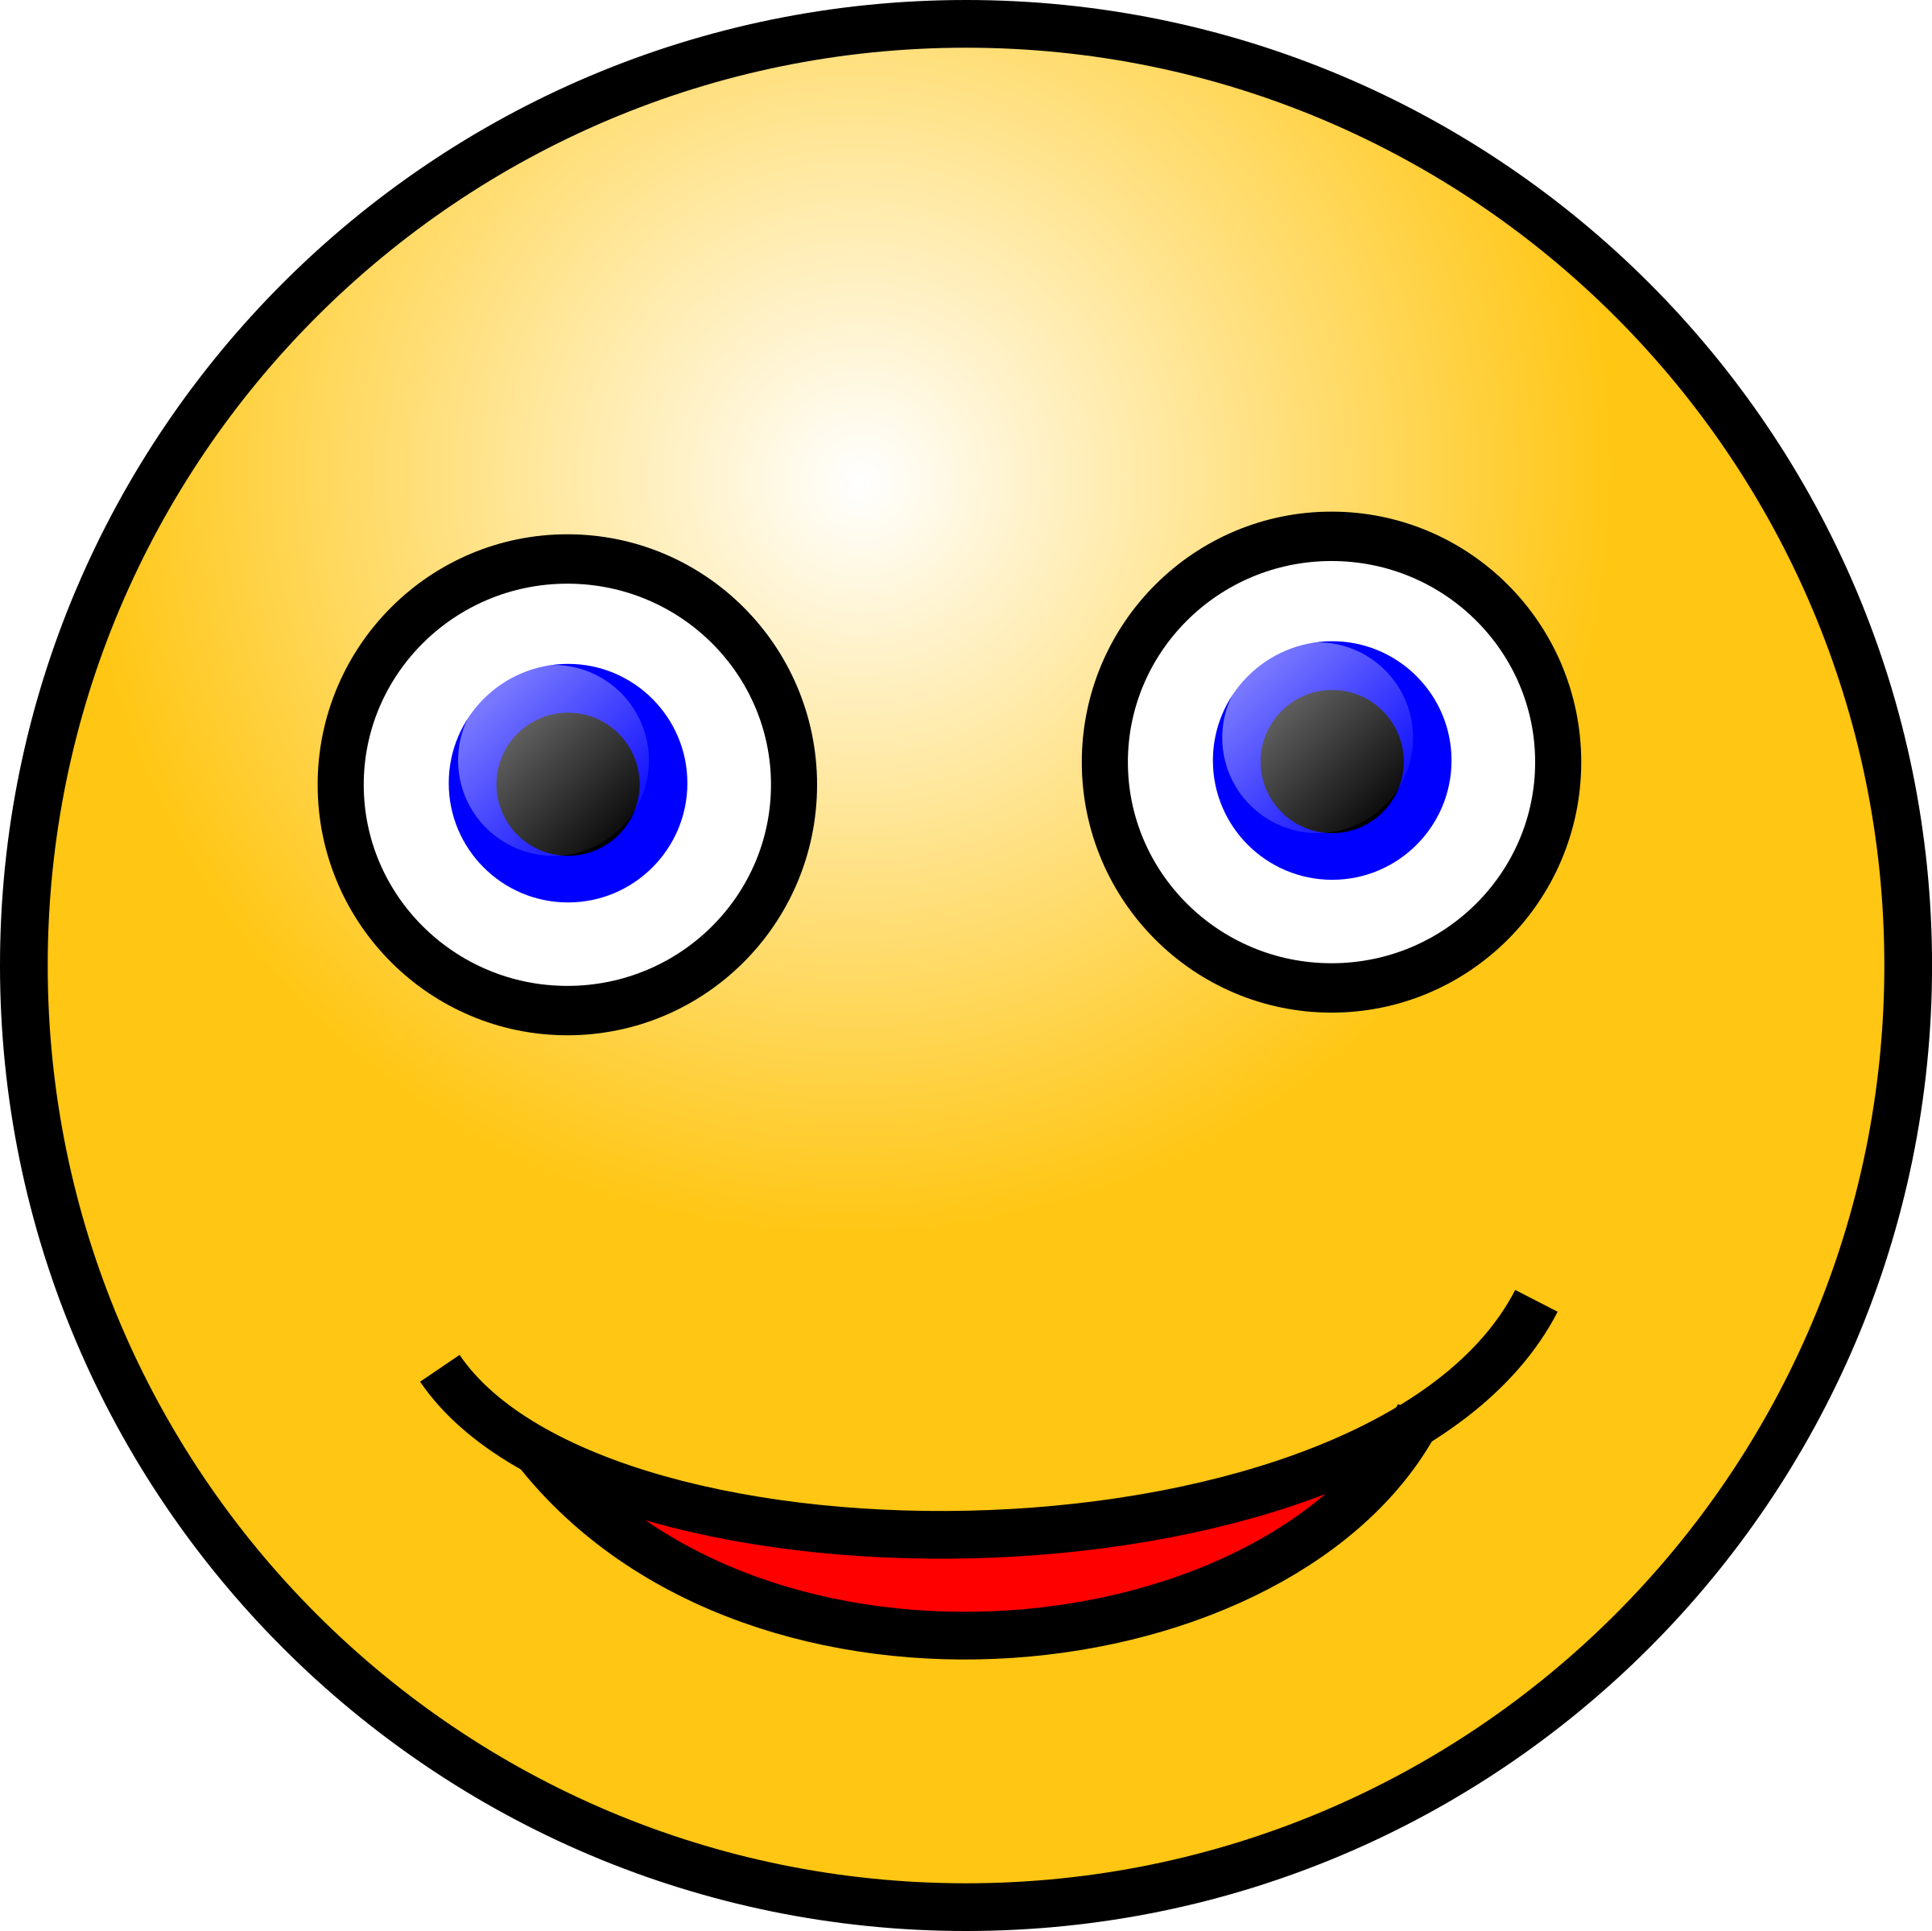 Emoticons: Smiling face by nicubunu